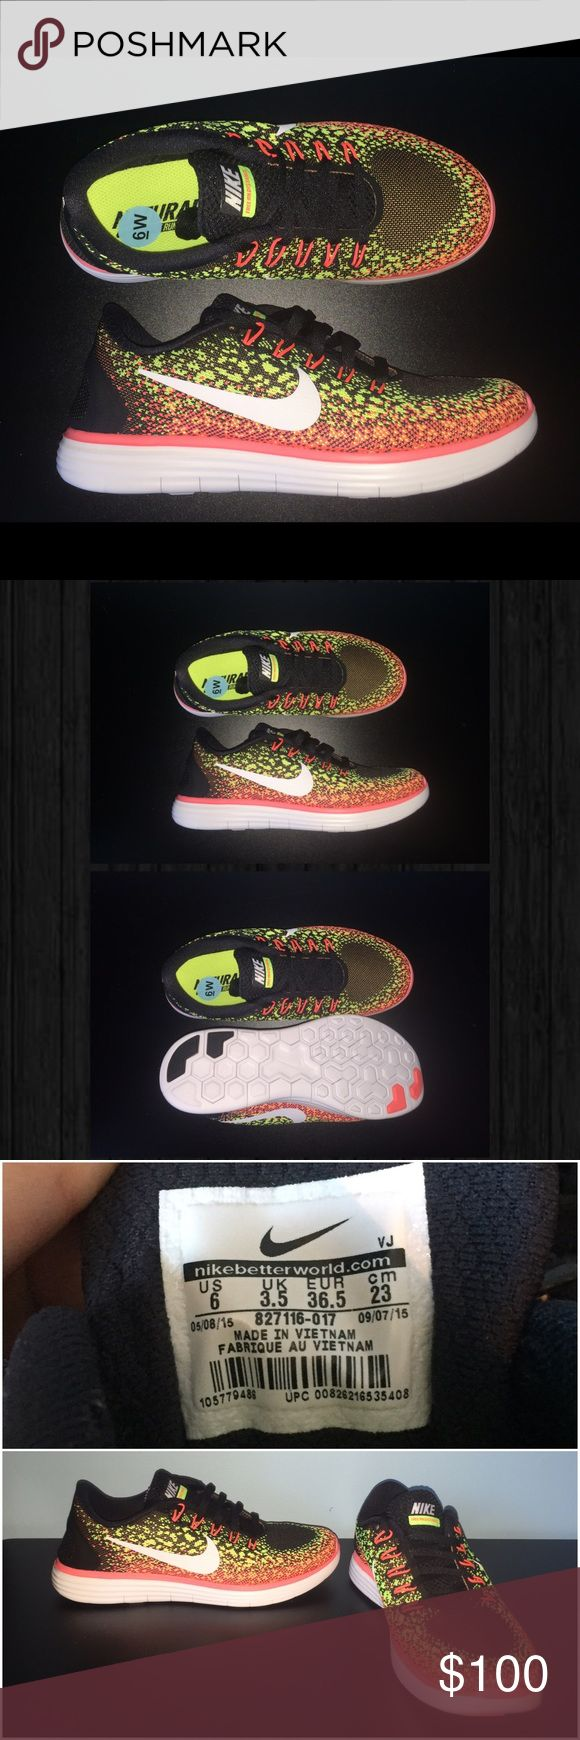 New    Nike Free RN Distance Women's Shoes    6 Brand New  Nike Free RN Distance Women's Shoes Black/Volt/Lava Size 6   The Nike Free RN Distance is a hyper flexible daily running shoe designed for natural movement and a neutral foot motion Nike Shoes Sneakers